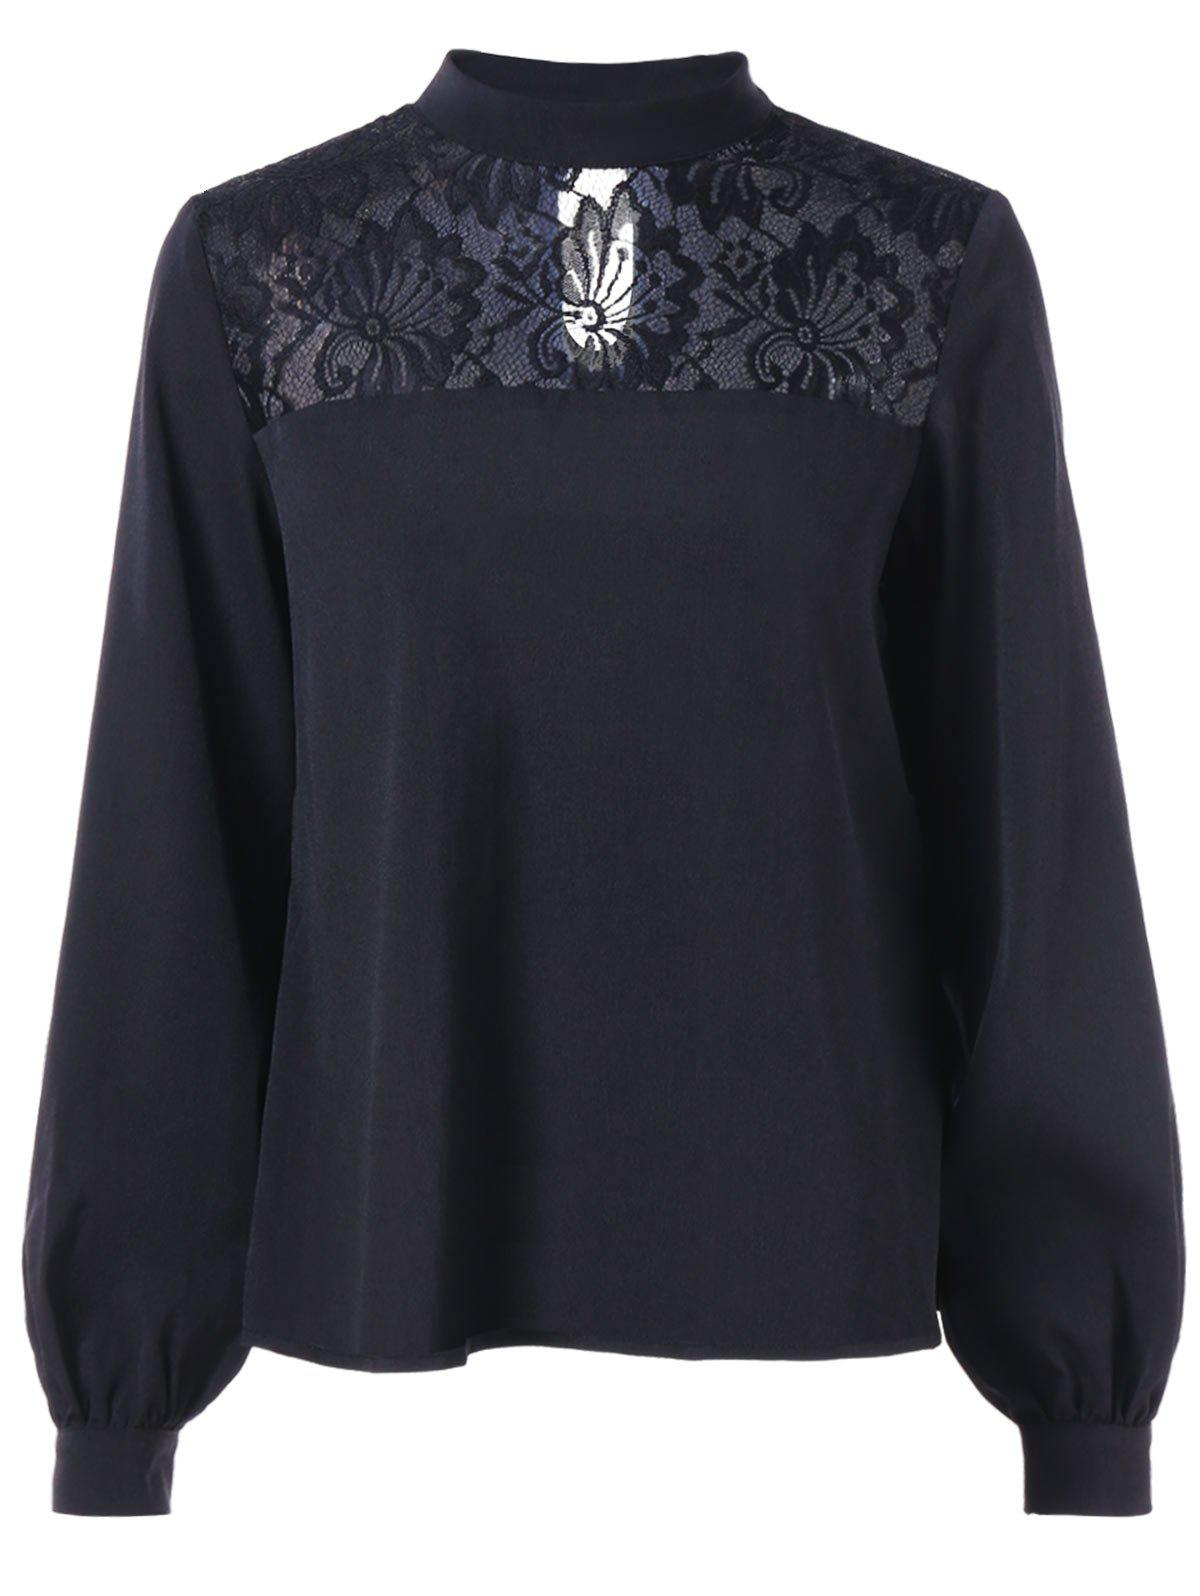 Shop Floral Lace Insert Long Sleeve Blouse